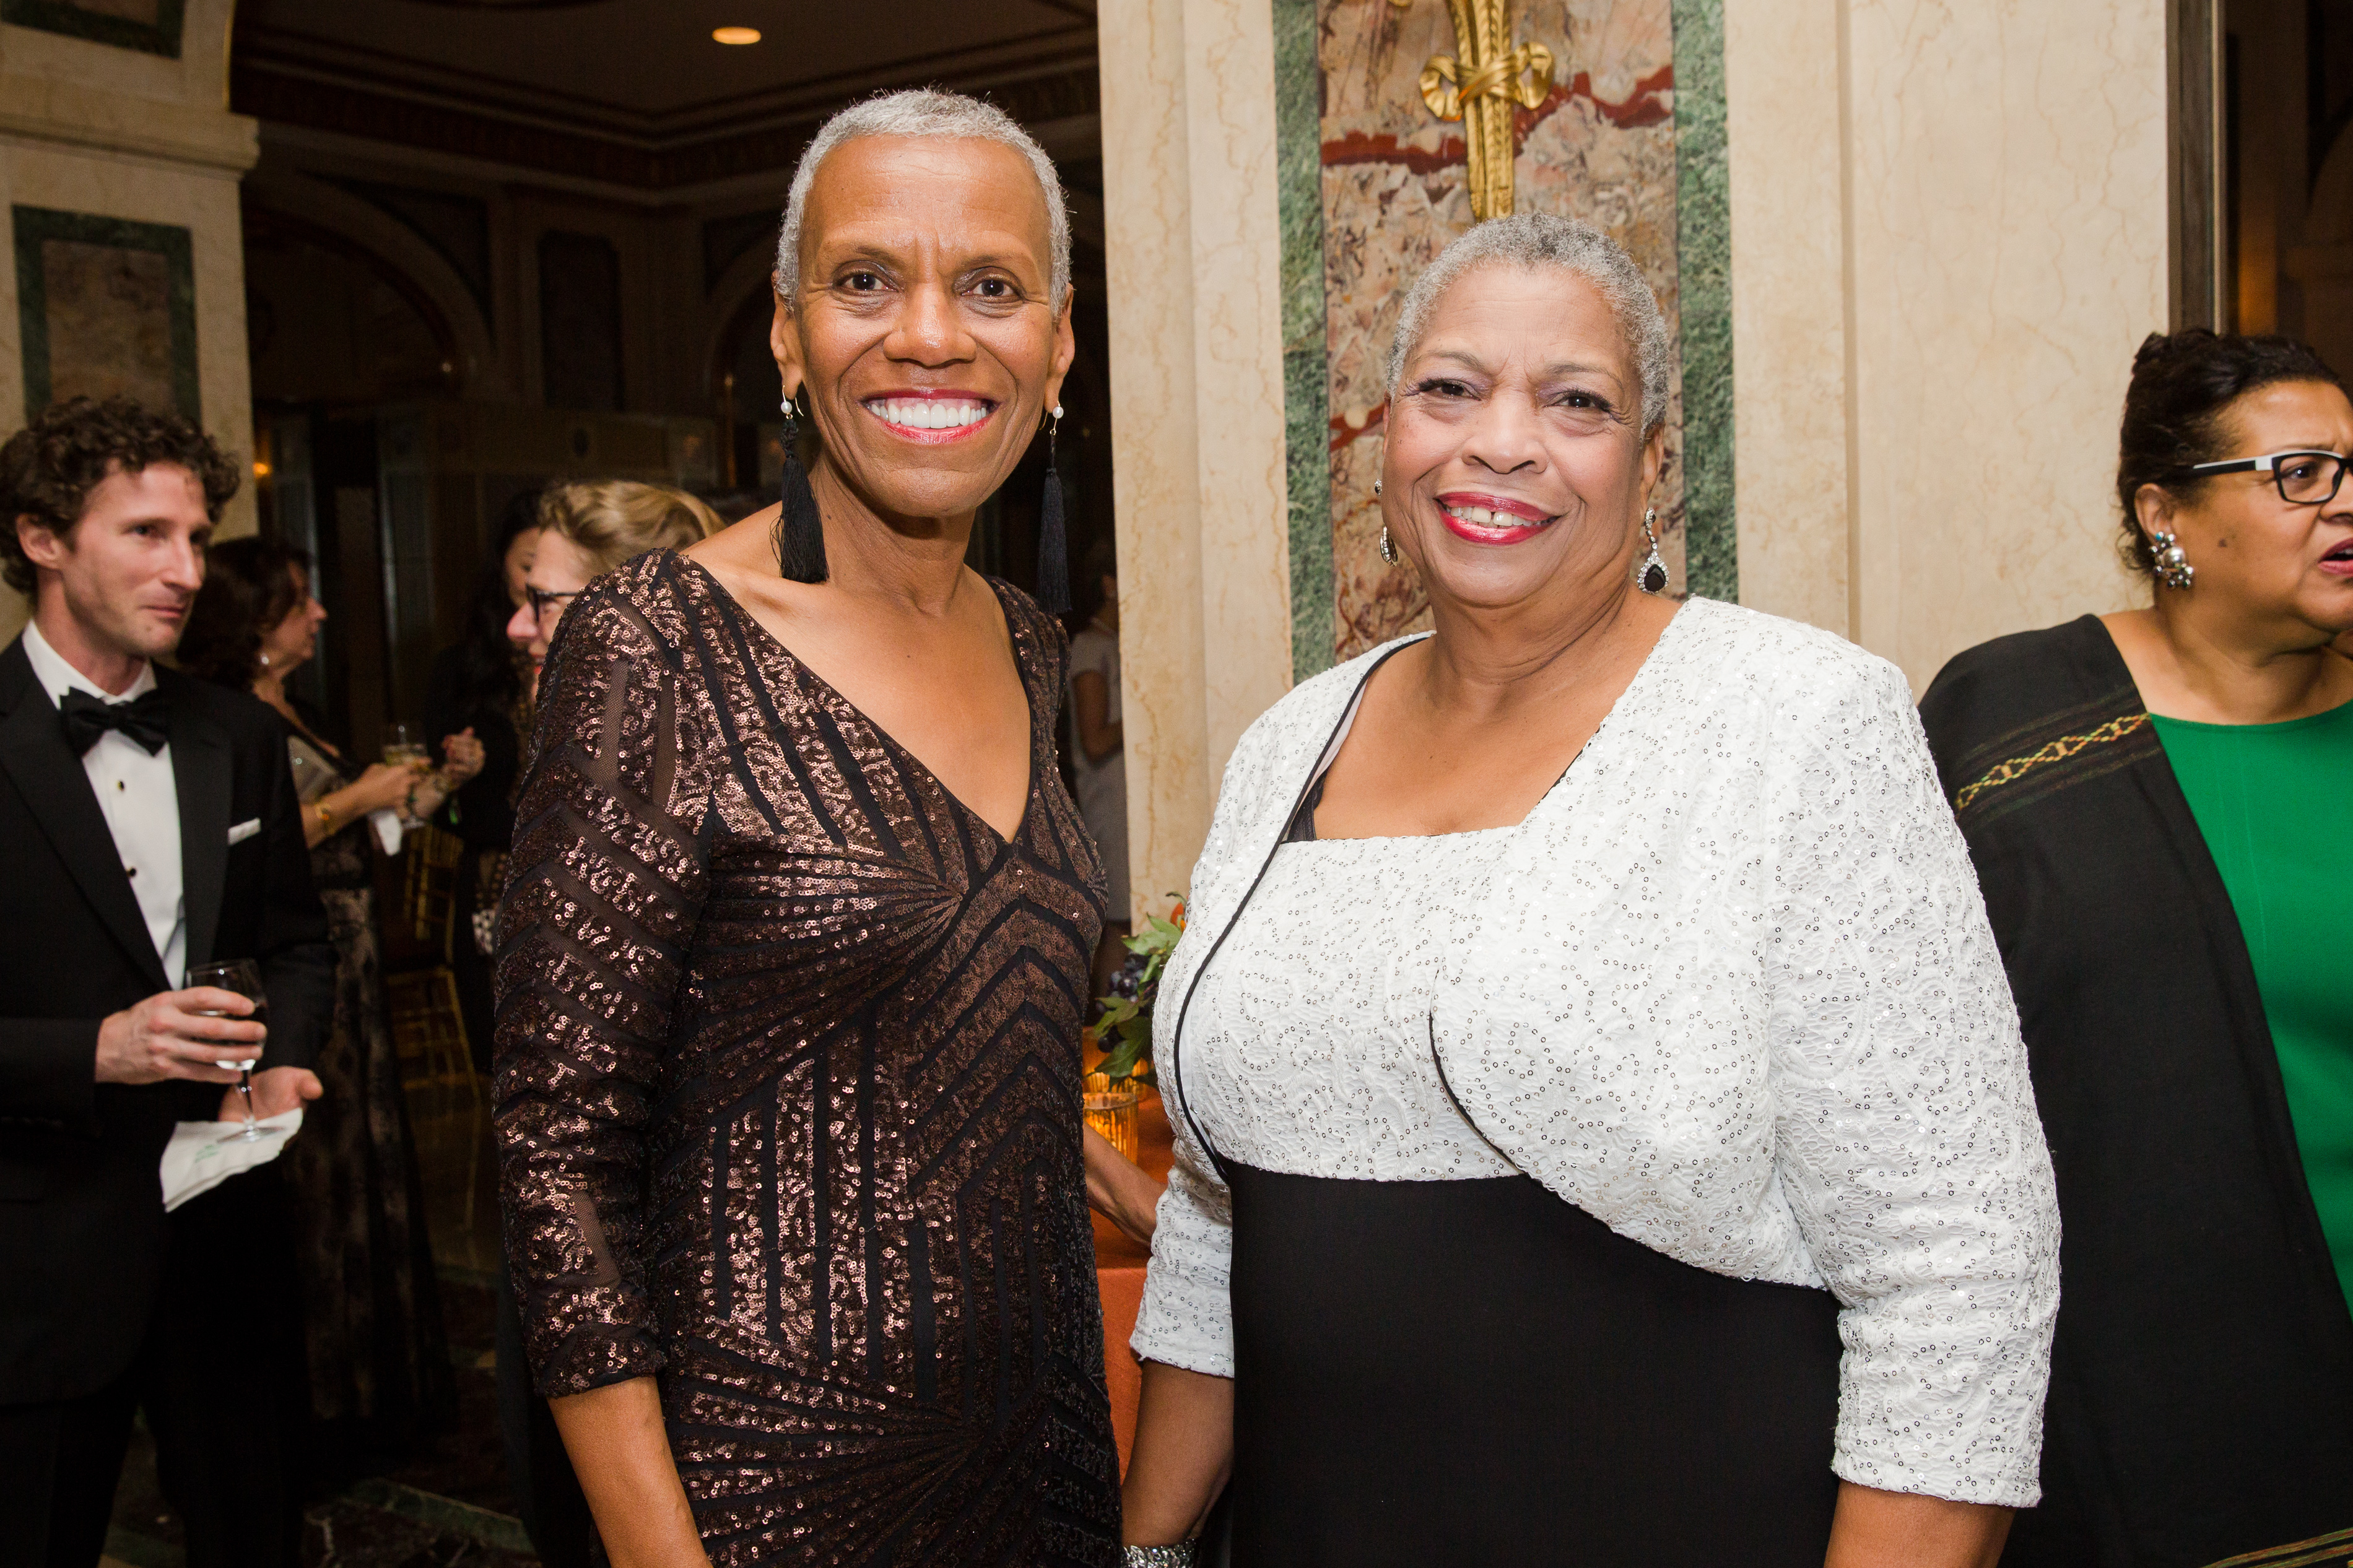 From left: Andrea Taylor and Priscilla Hancock Cooper, representing the Alabama Civil Rights Sites, 2018 Watch (photo: Liz Ligon)